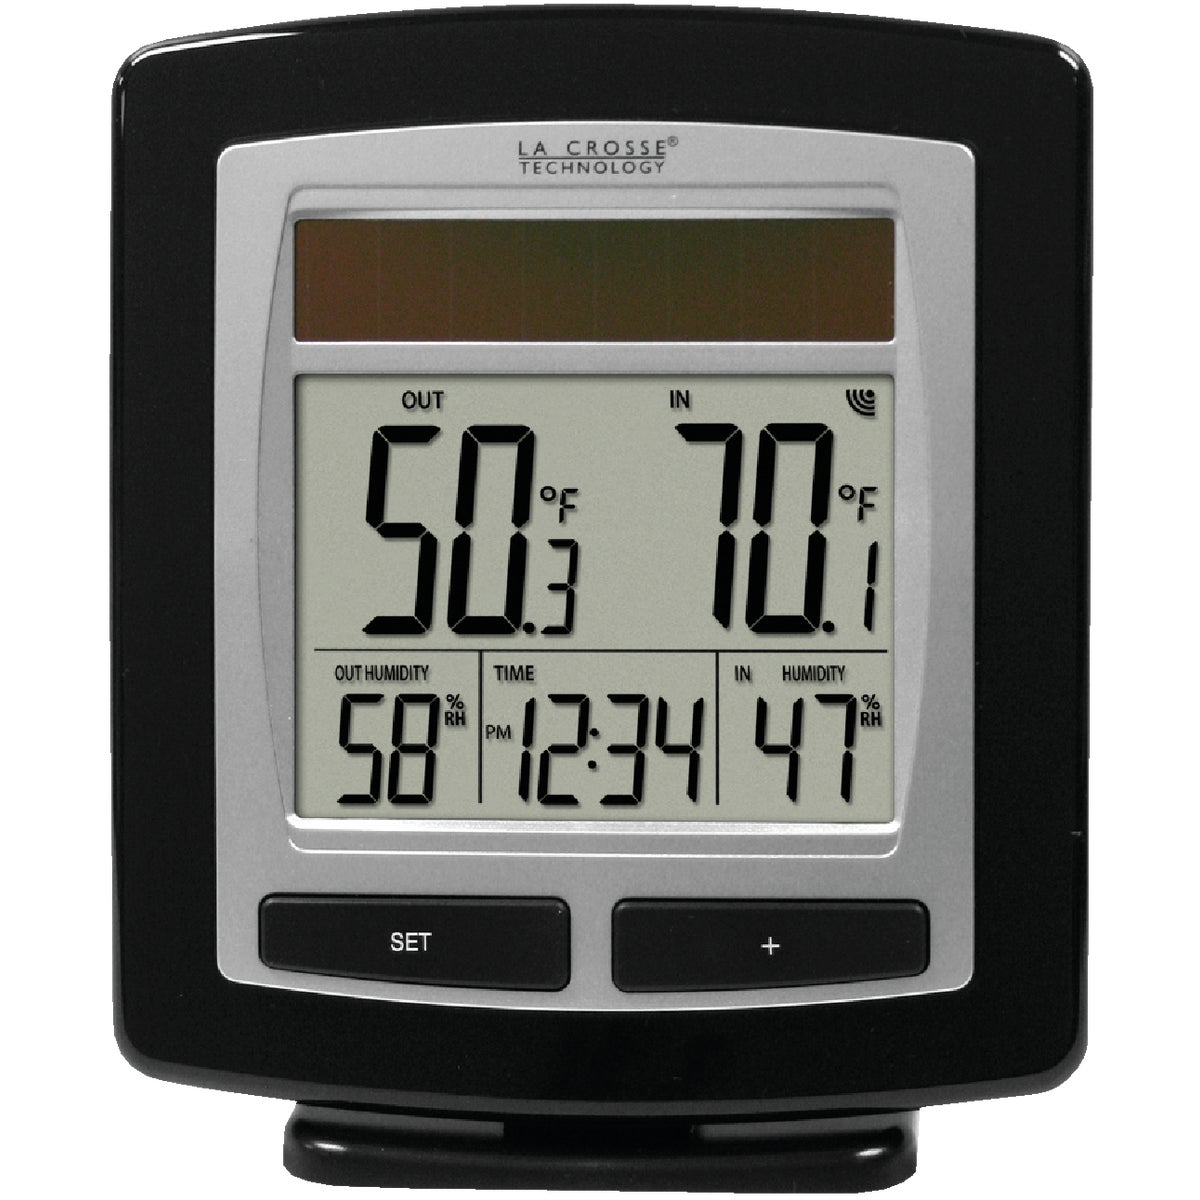 Item 600373, Solar-powered temperature and humidity station with solar sensor. Base unit receives solar energy allowing for longer battery life.